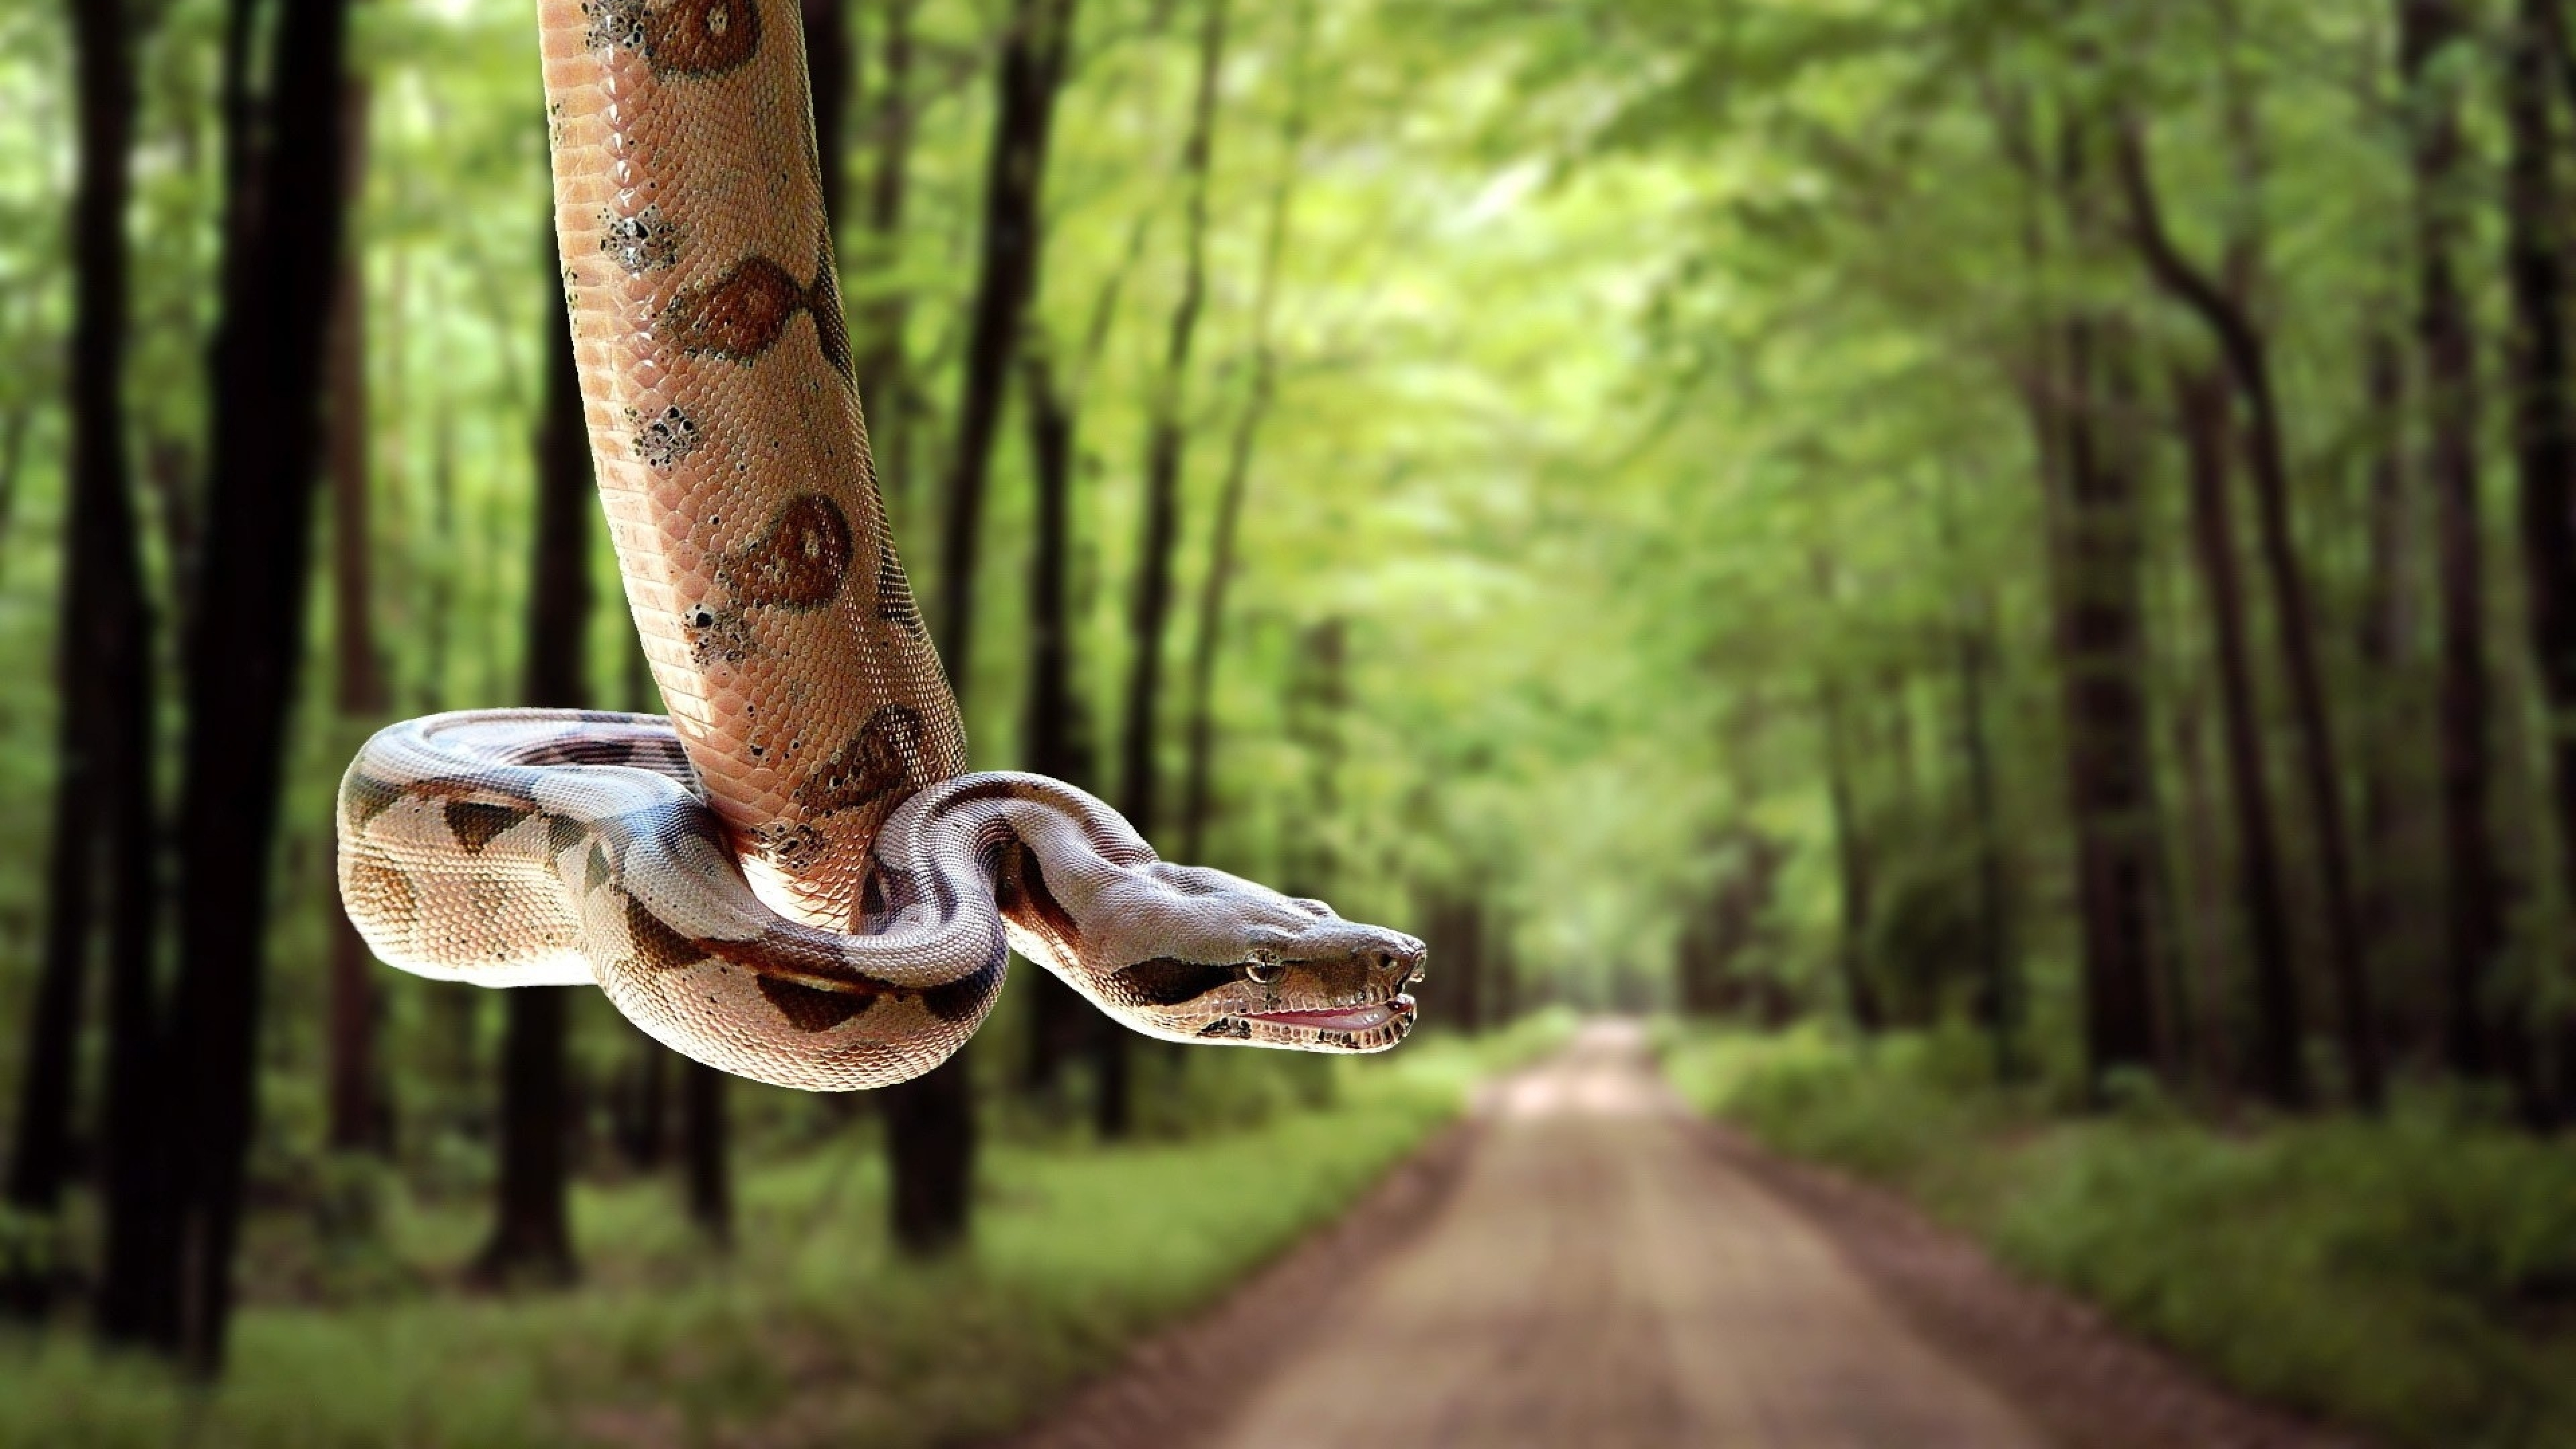 4k snakes wallpapers high quality download free